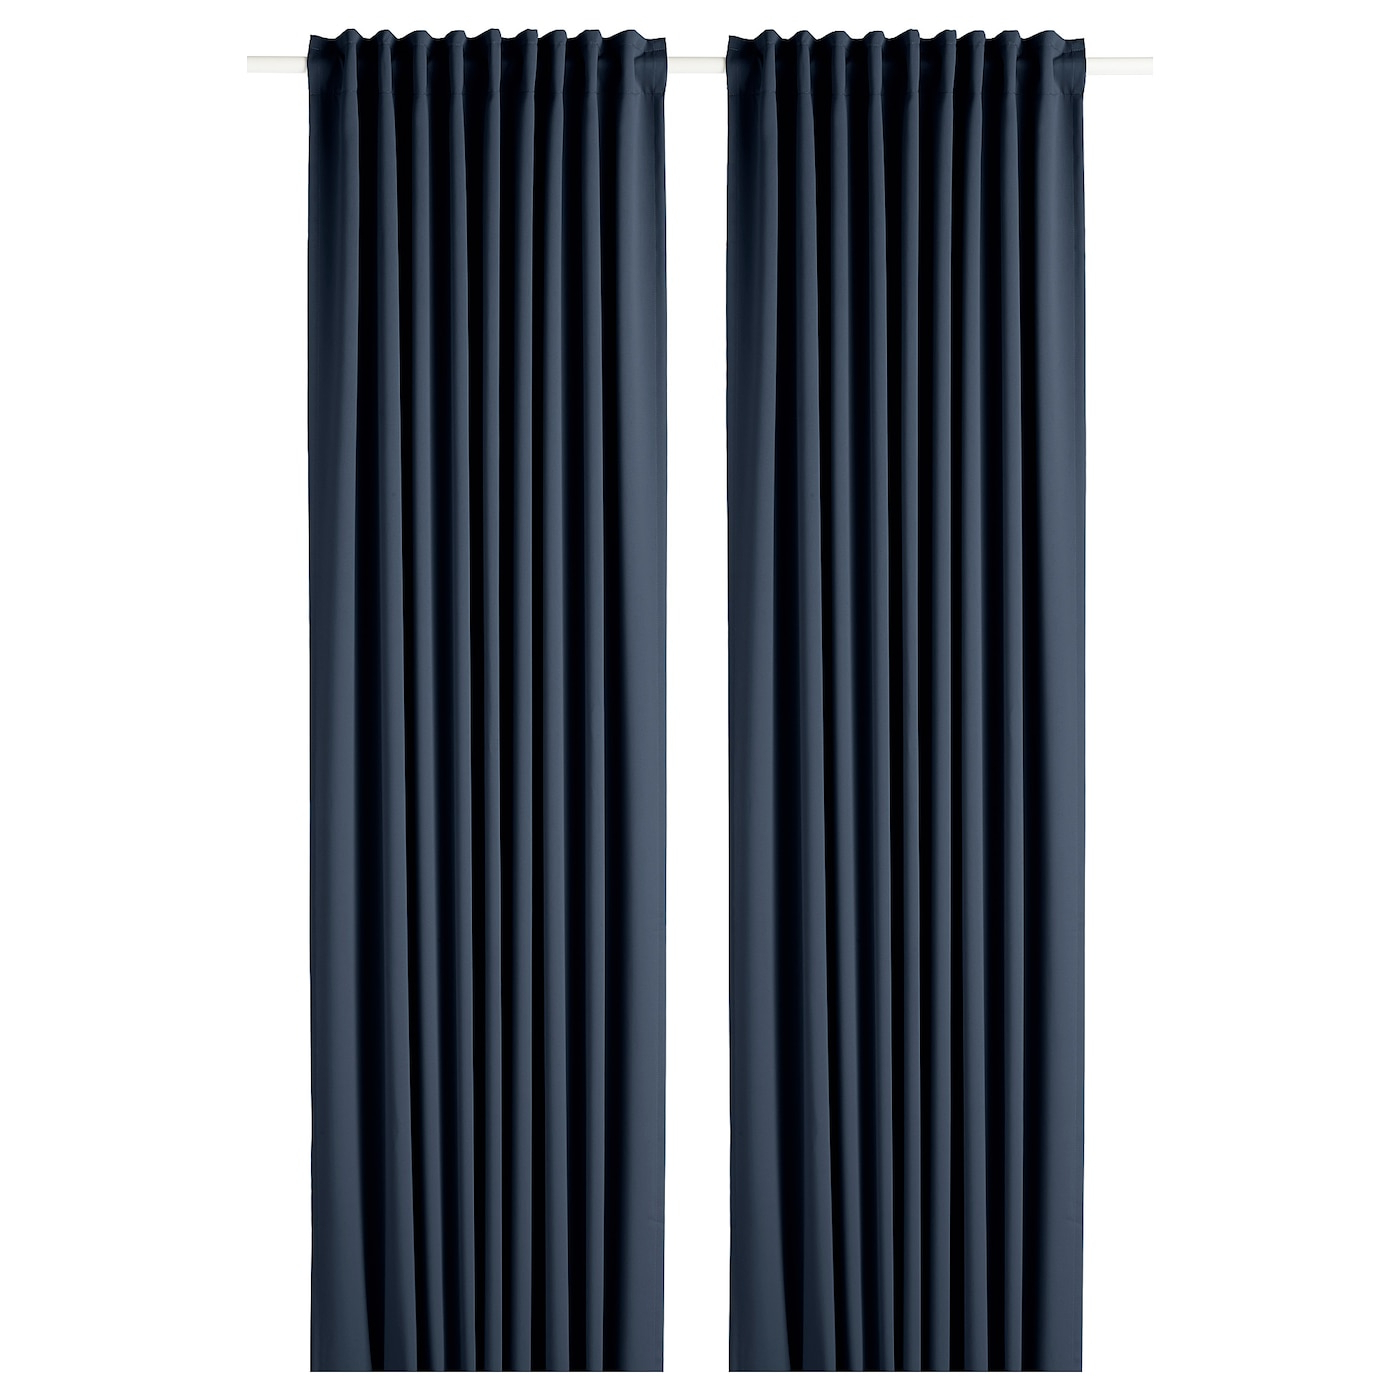 Widely Used Glasgow Curtain Tier Sets Pertaining To Block Out Curtains, 1 Pair Majgull Dark Blue (View 15 of 20)